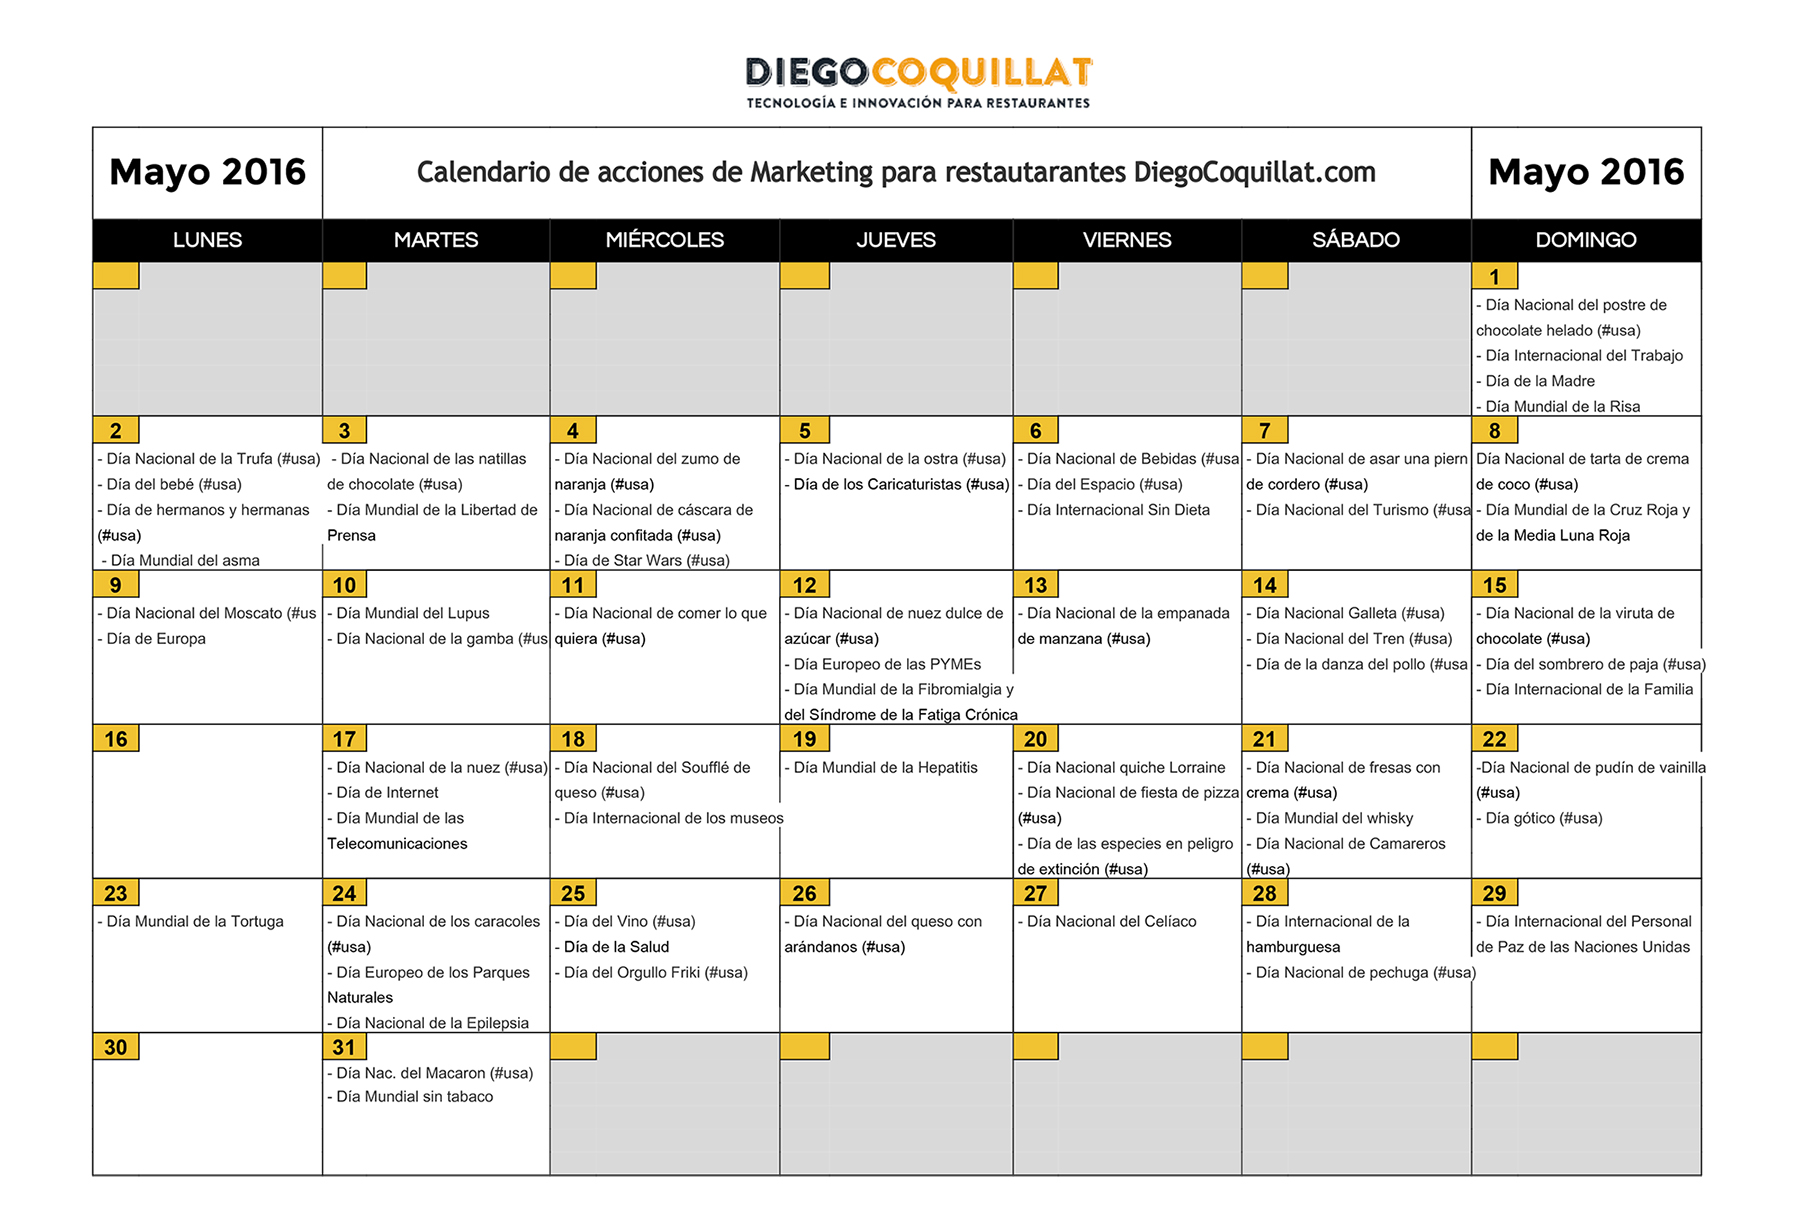 Calendar Marketing actions DiegoCoquillat.com-Mayo2016